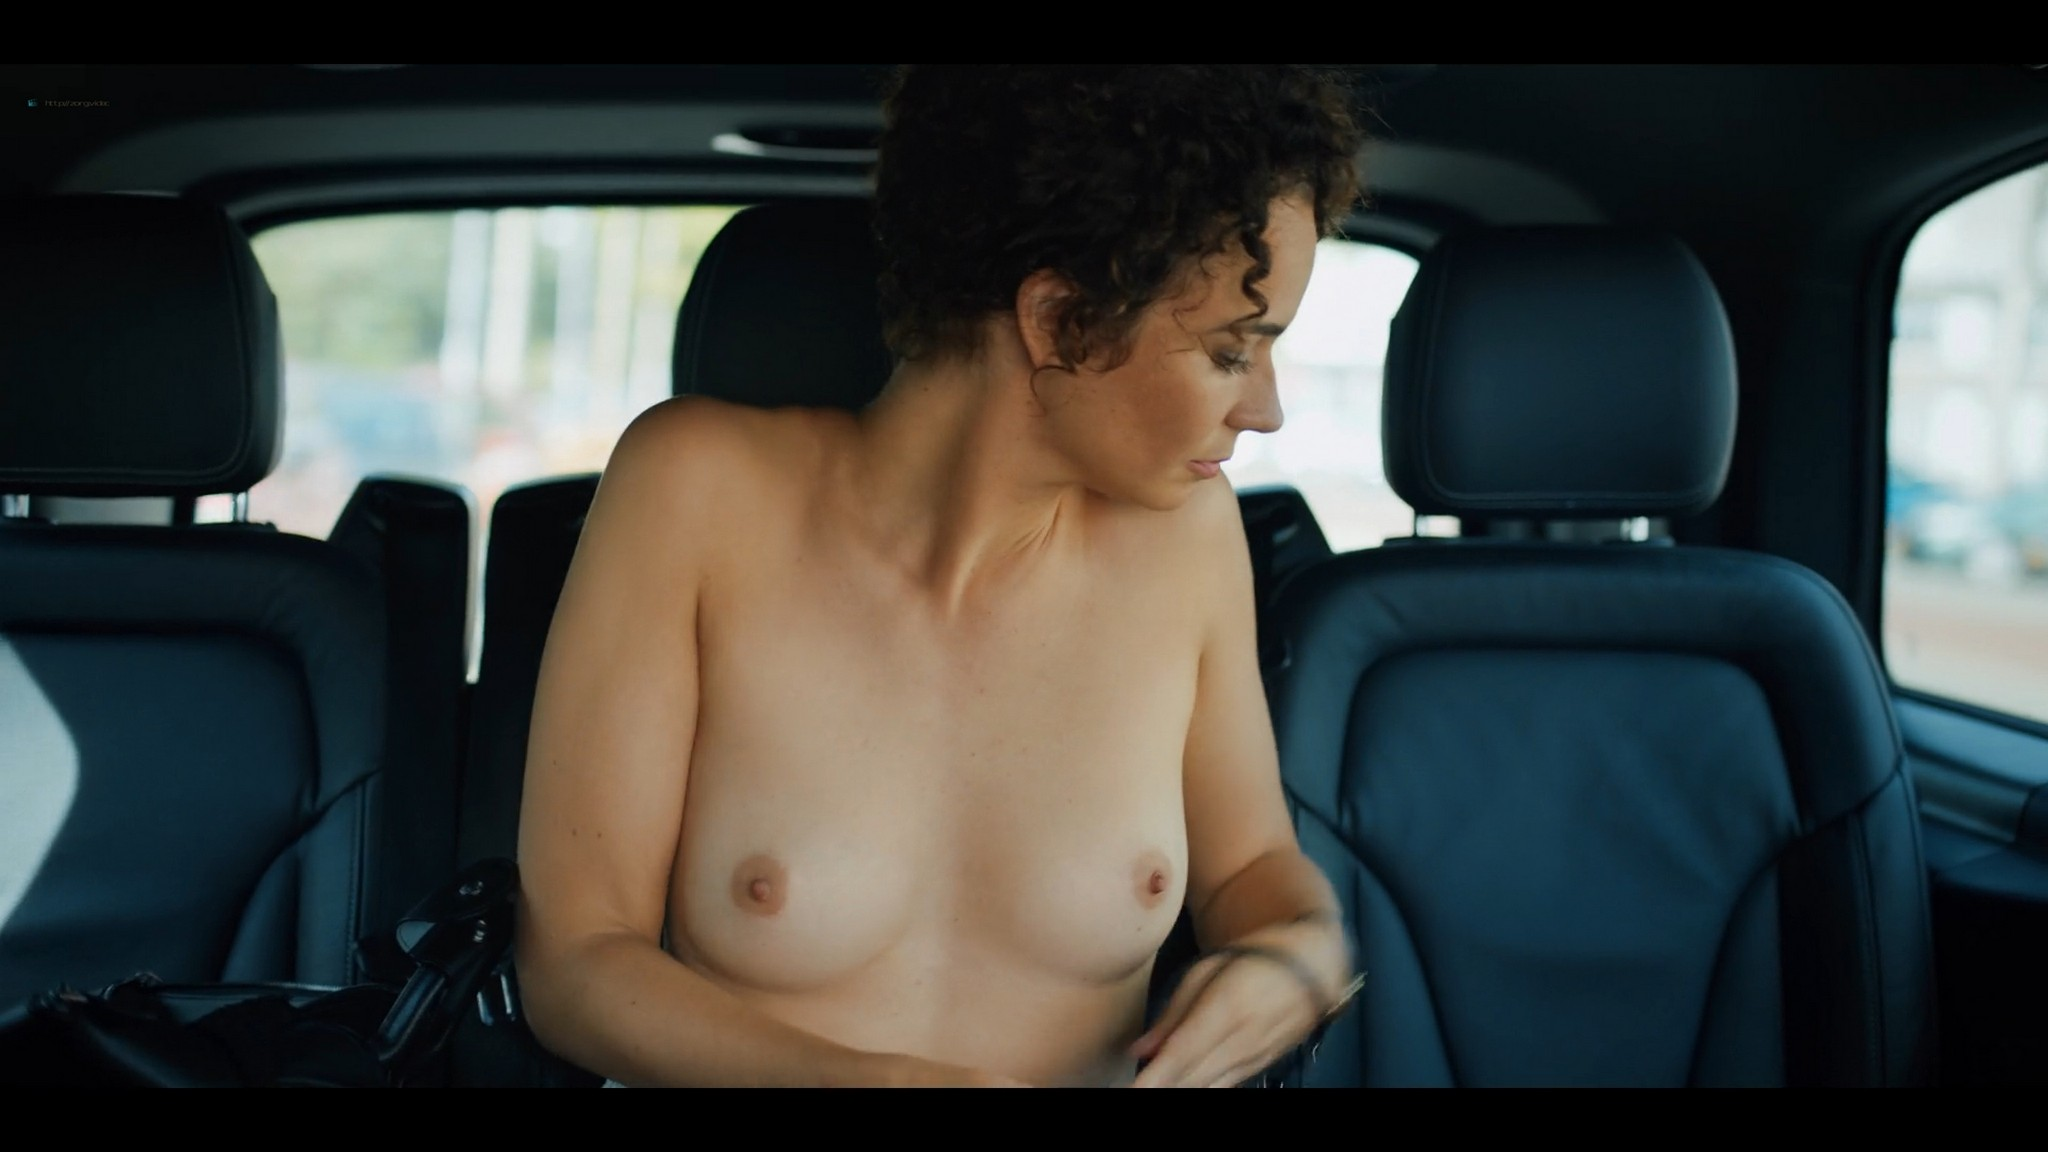 Daphne Wellens nude sex Karina Smulders sex - Women of the Nigh (2019) HD 1080p Web (10)